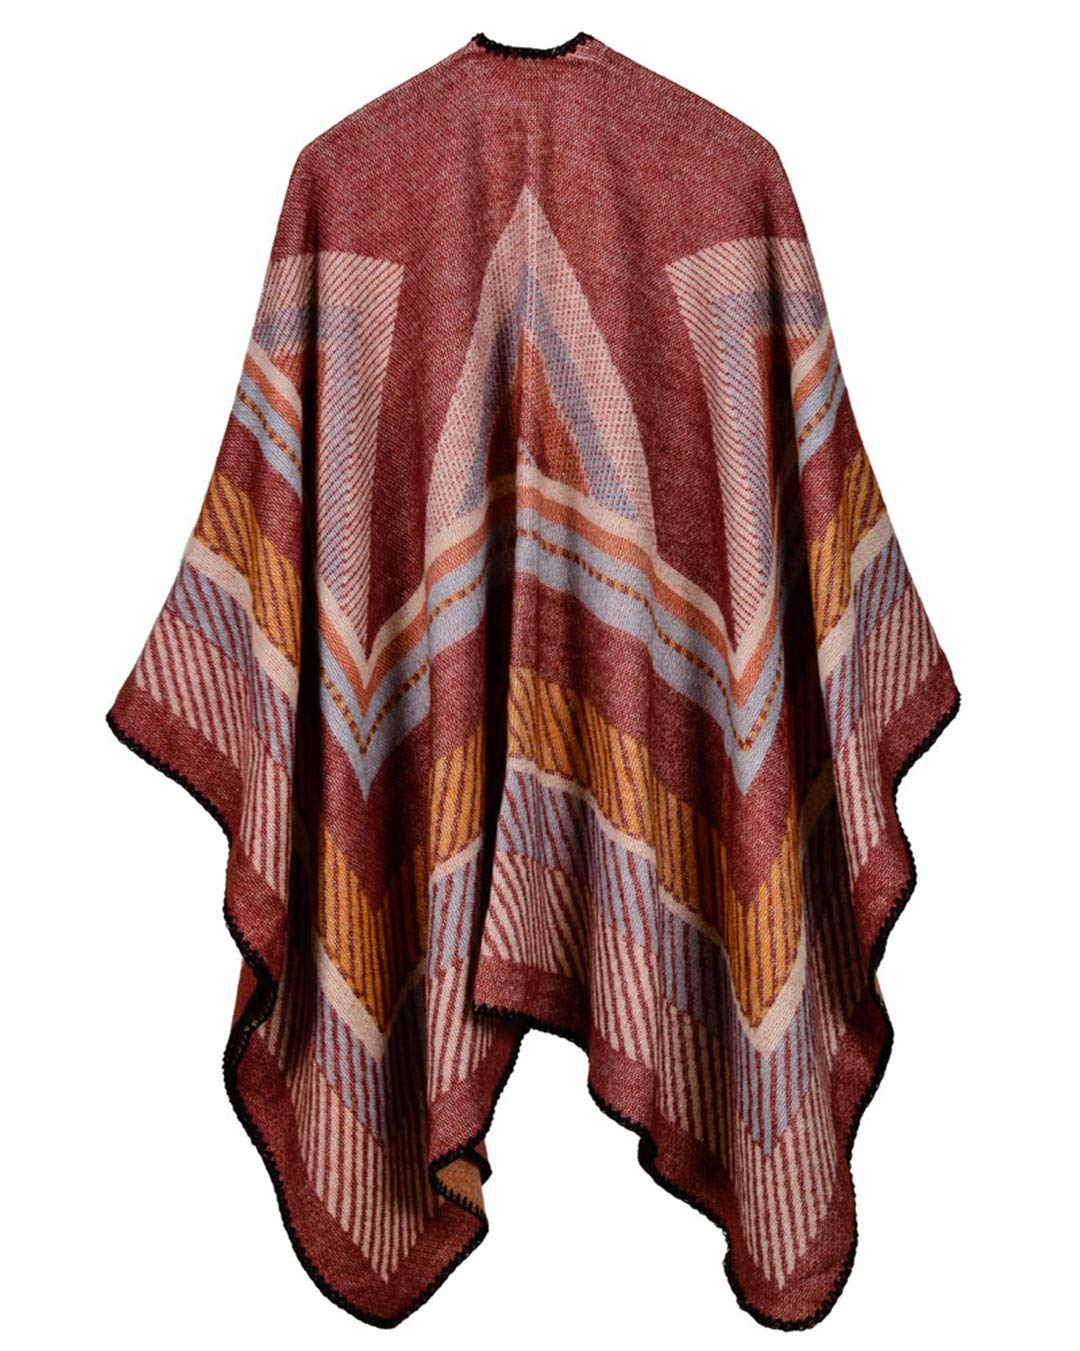 Women Poncho Scarf Cardigan Sweater Geometrical Striped Warm Cape Shawl Long Scarves Outwear Red